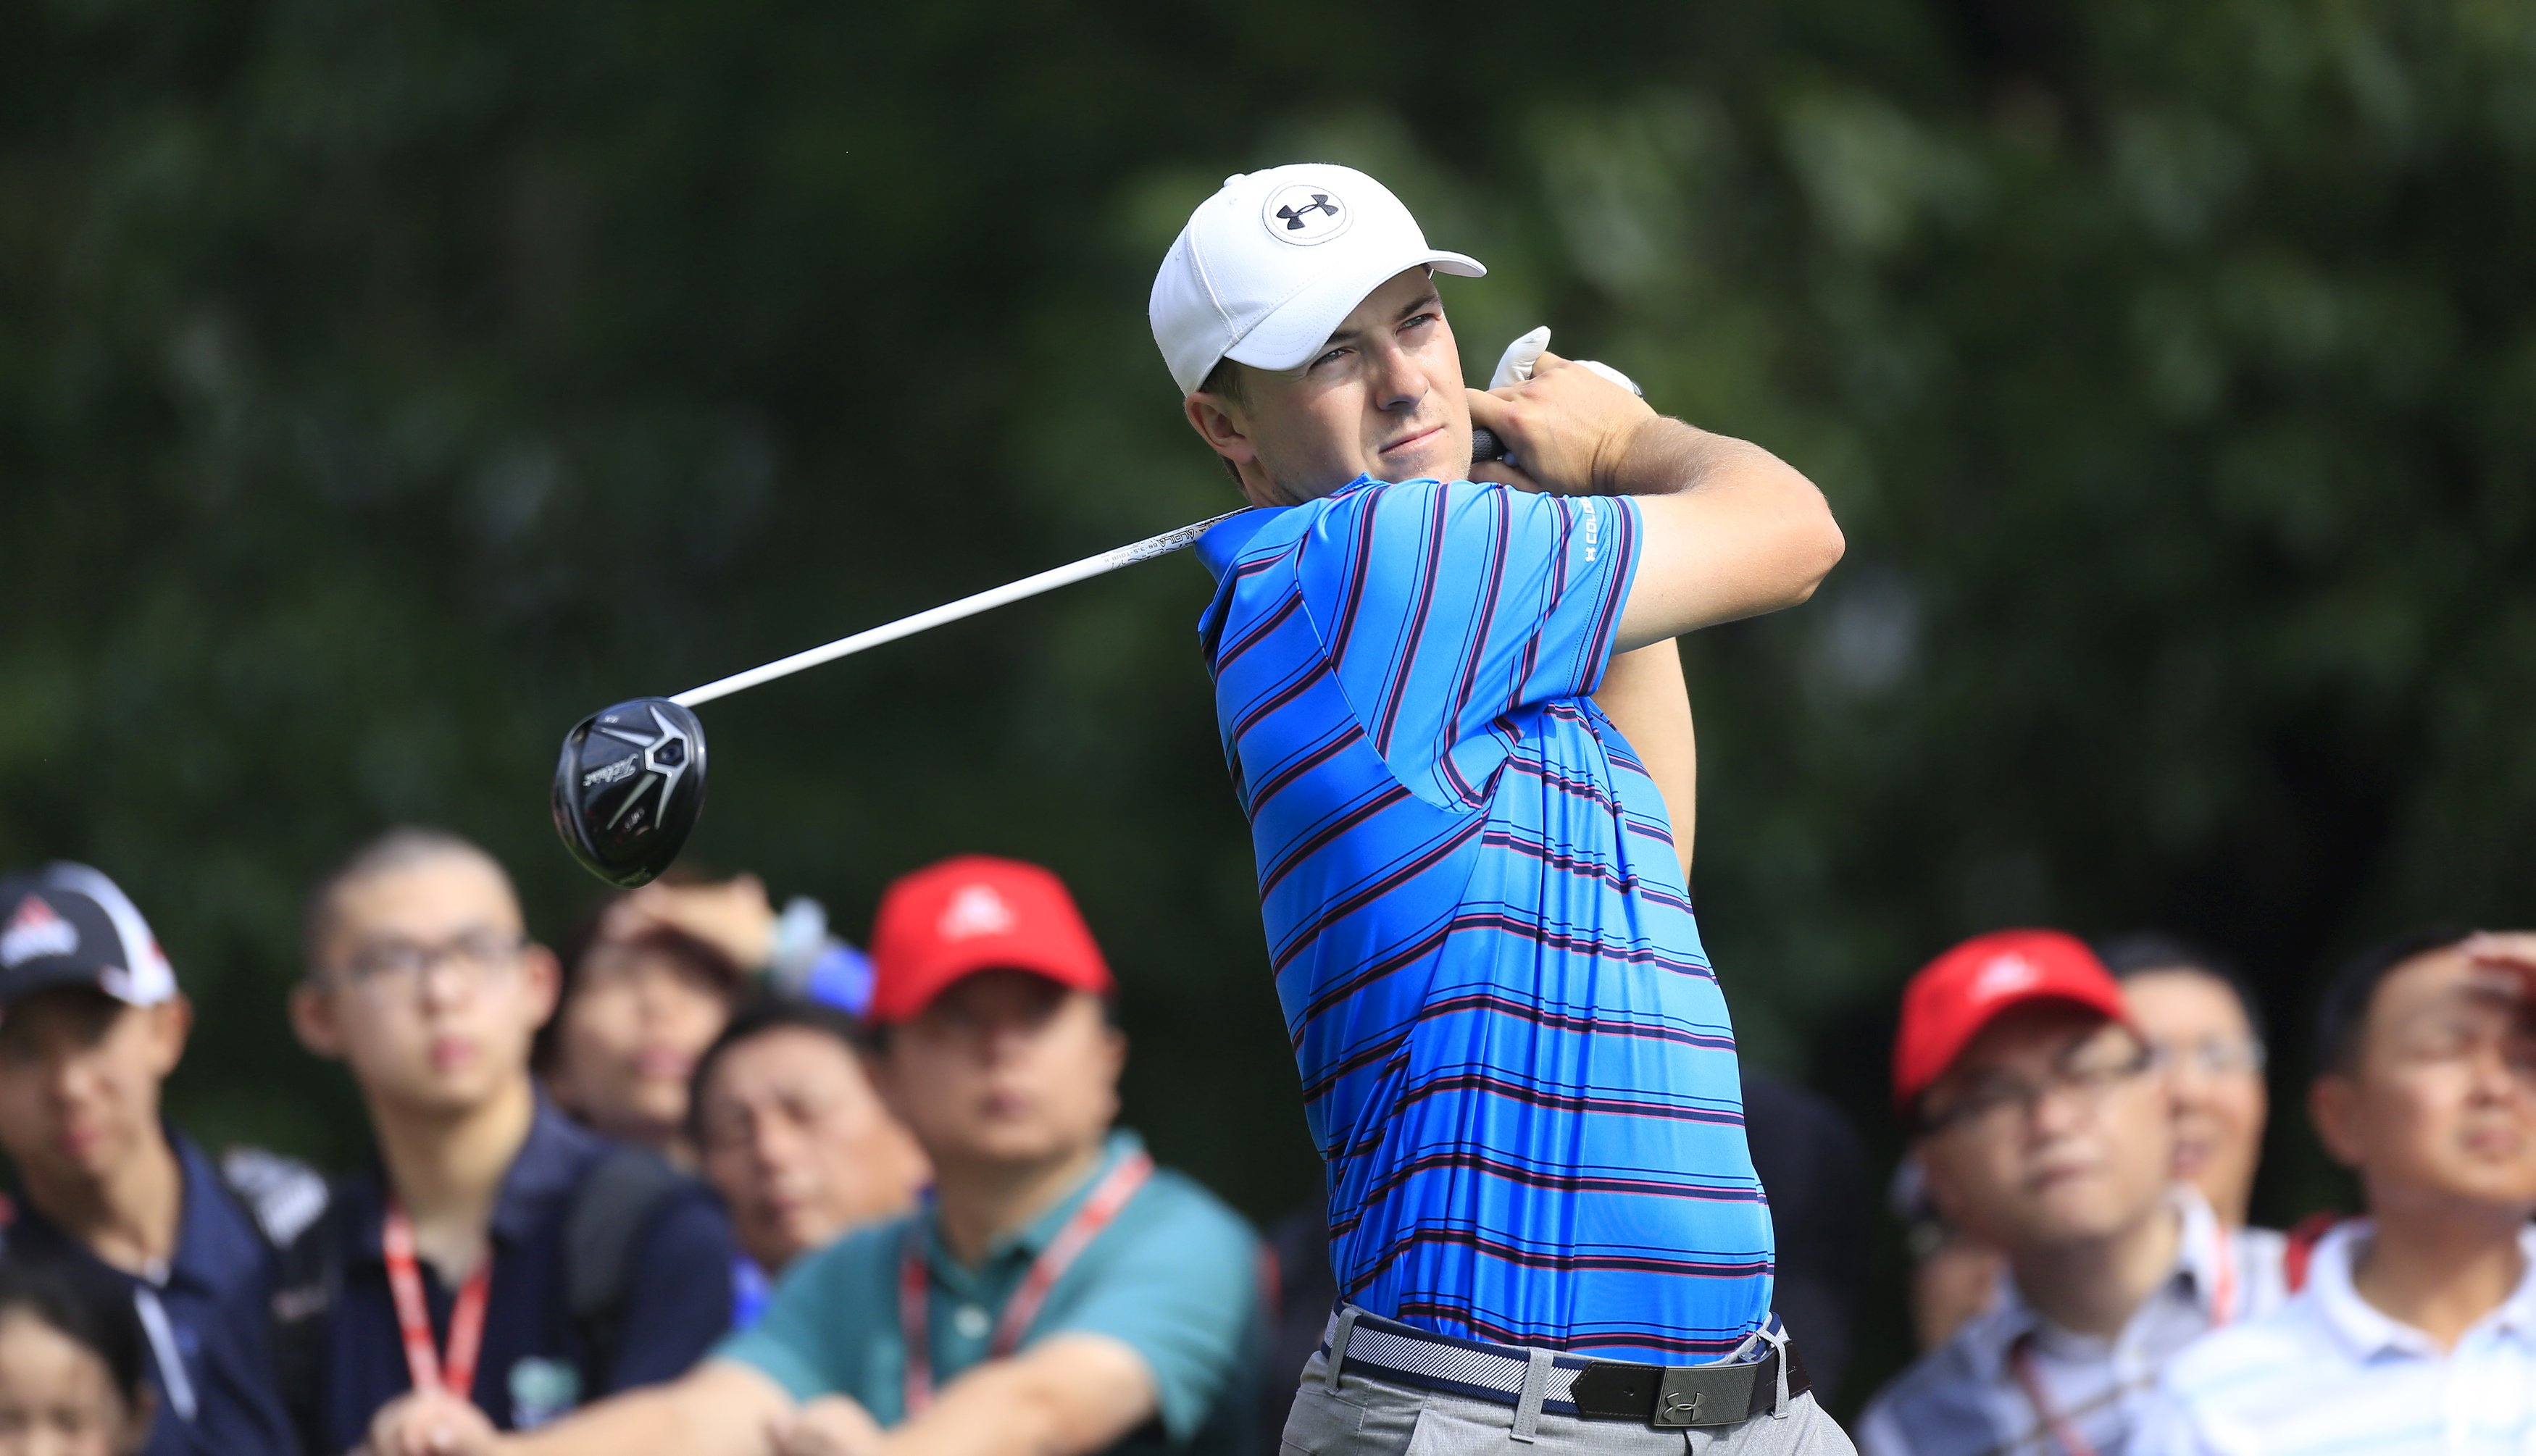 Jordan Spieth of the US tees off on the 14th hole during the first round of the WGC-HSBC Champions golf tournament in Shanghai, China, November 5, 2015. REUTERS/Aly Song